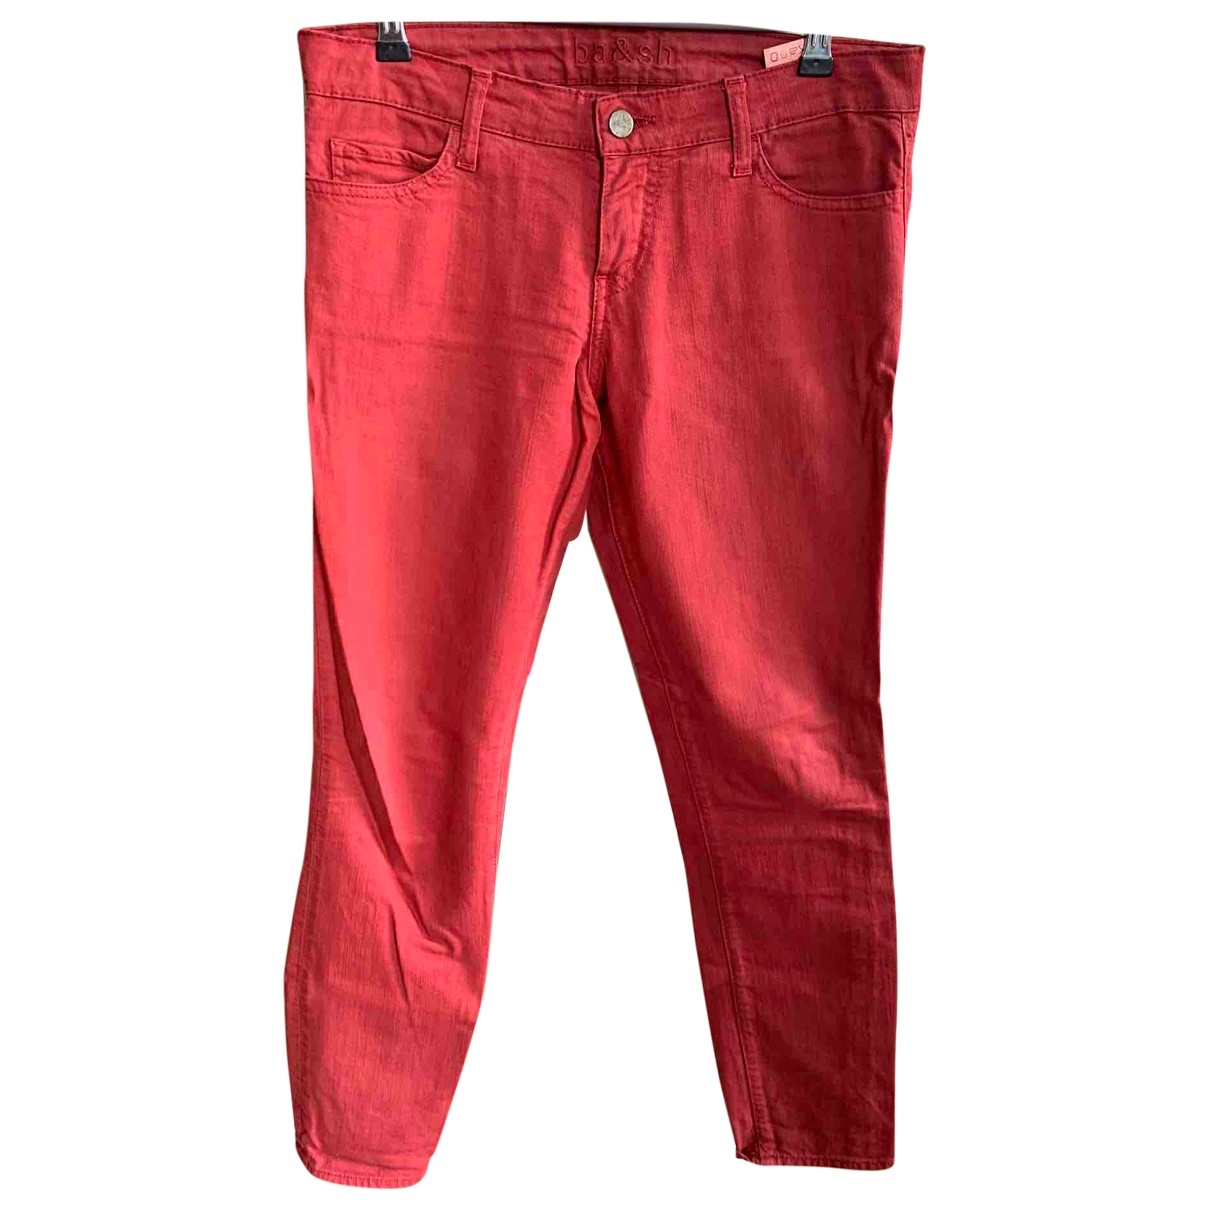 Ba&sh \N Red Cotton - elasthane Jeans for Women 25 US